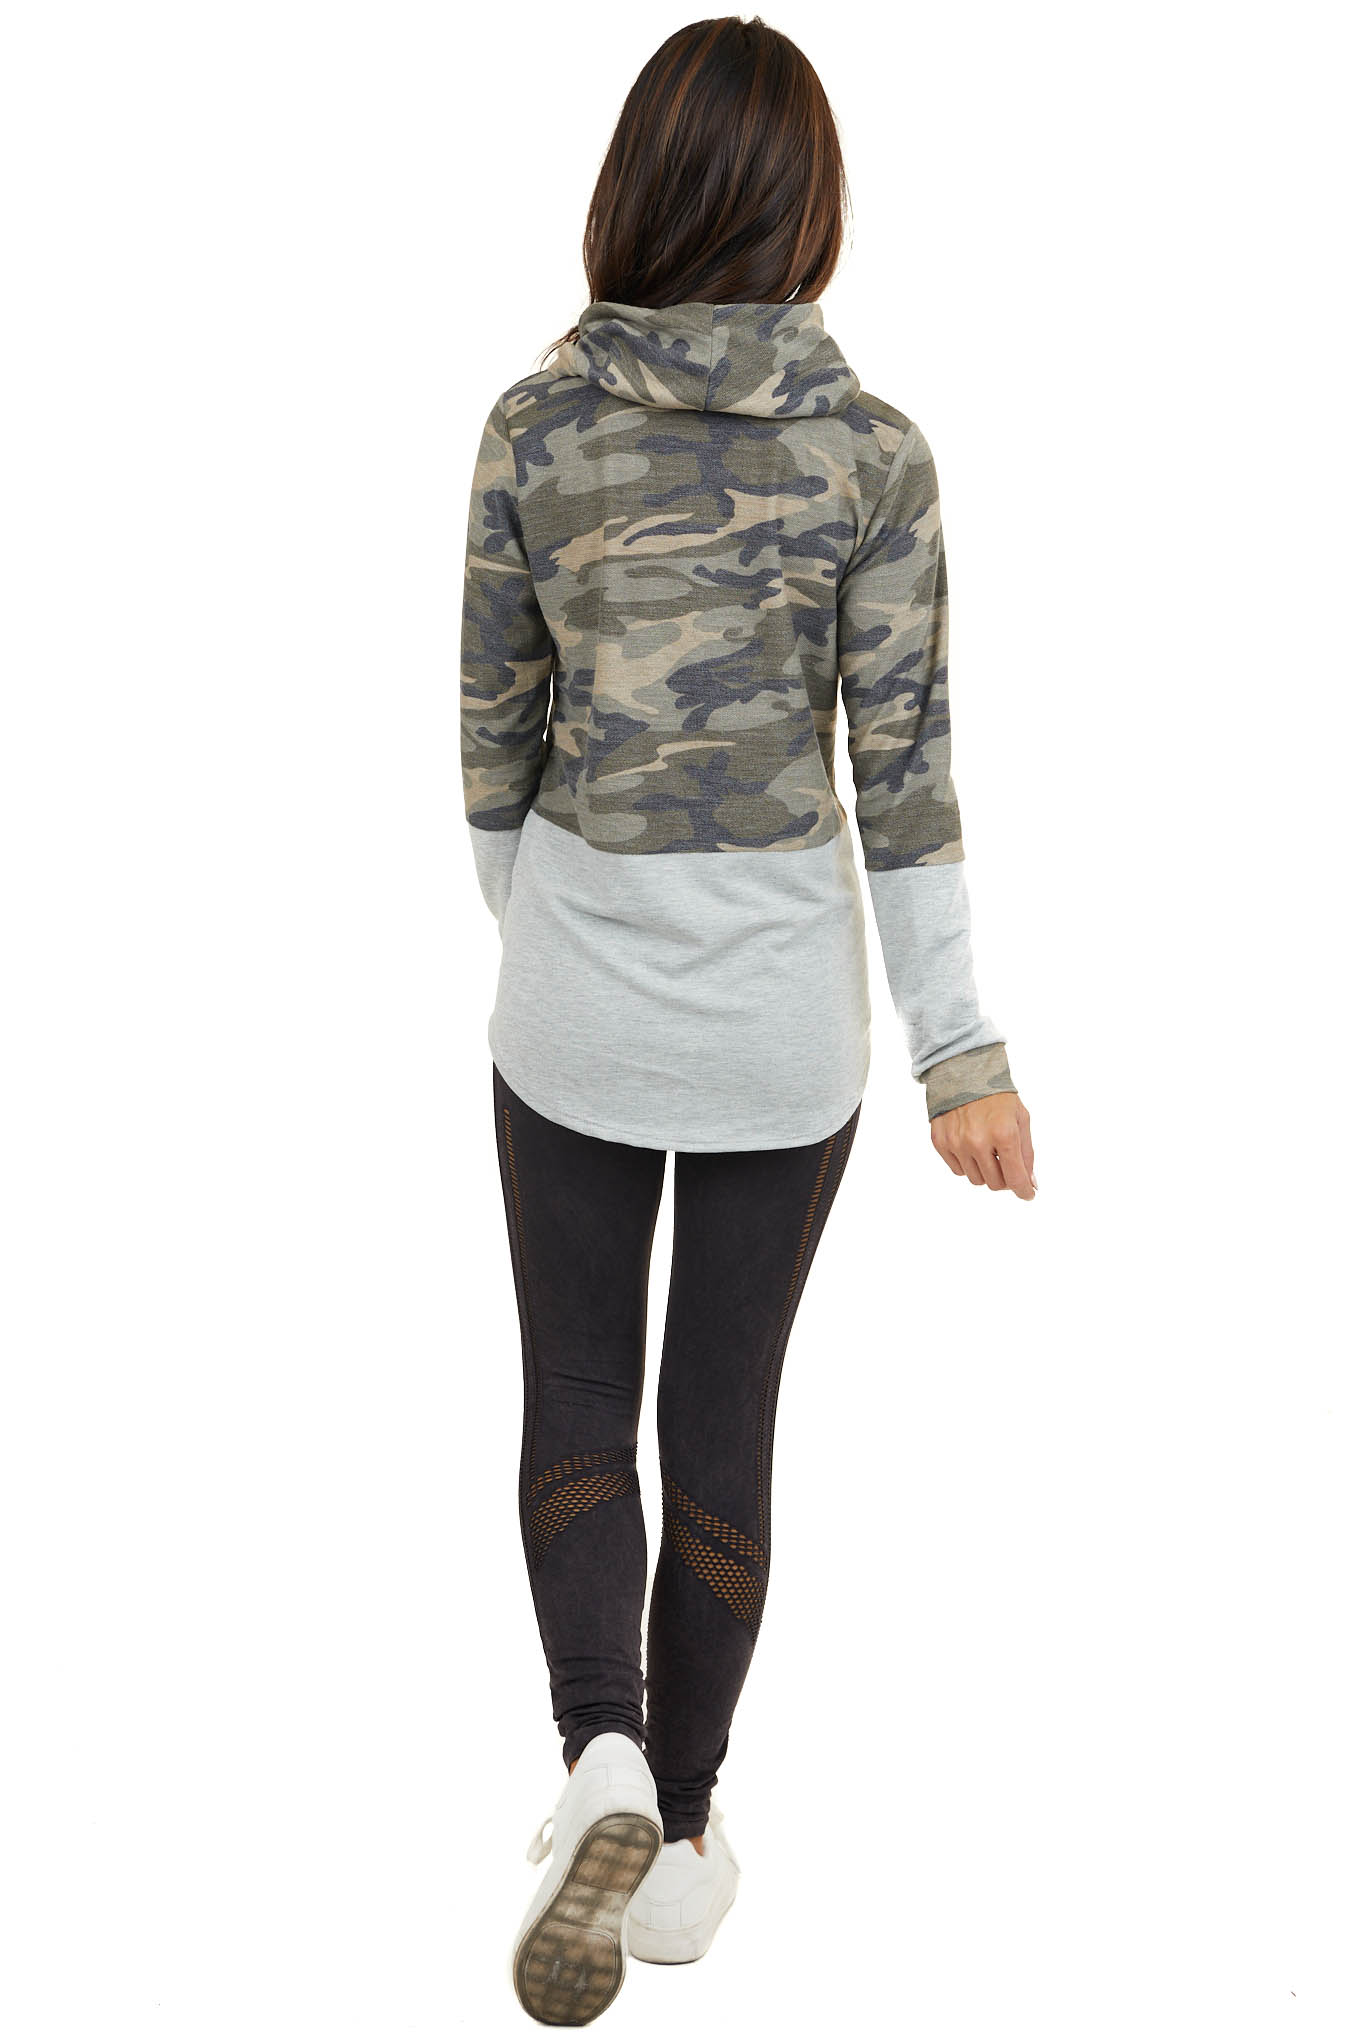 Olive Camo Colorblock Long Sleeve Top with Cowl Neckline